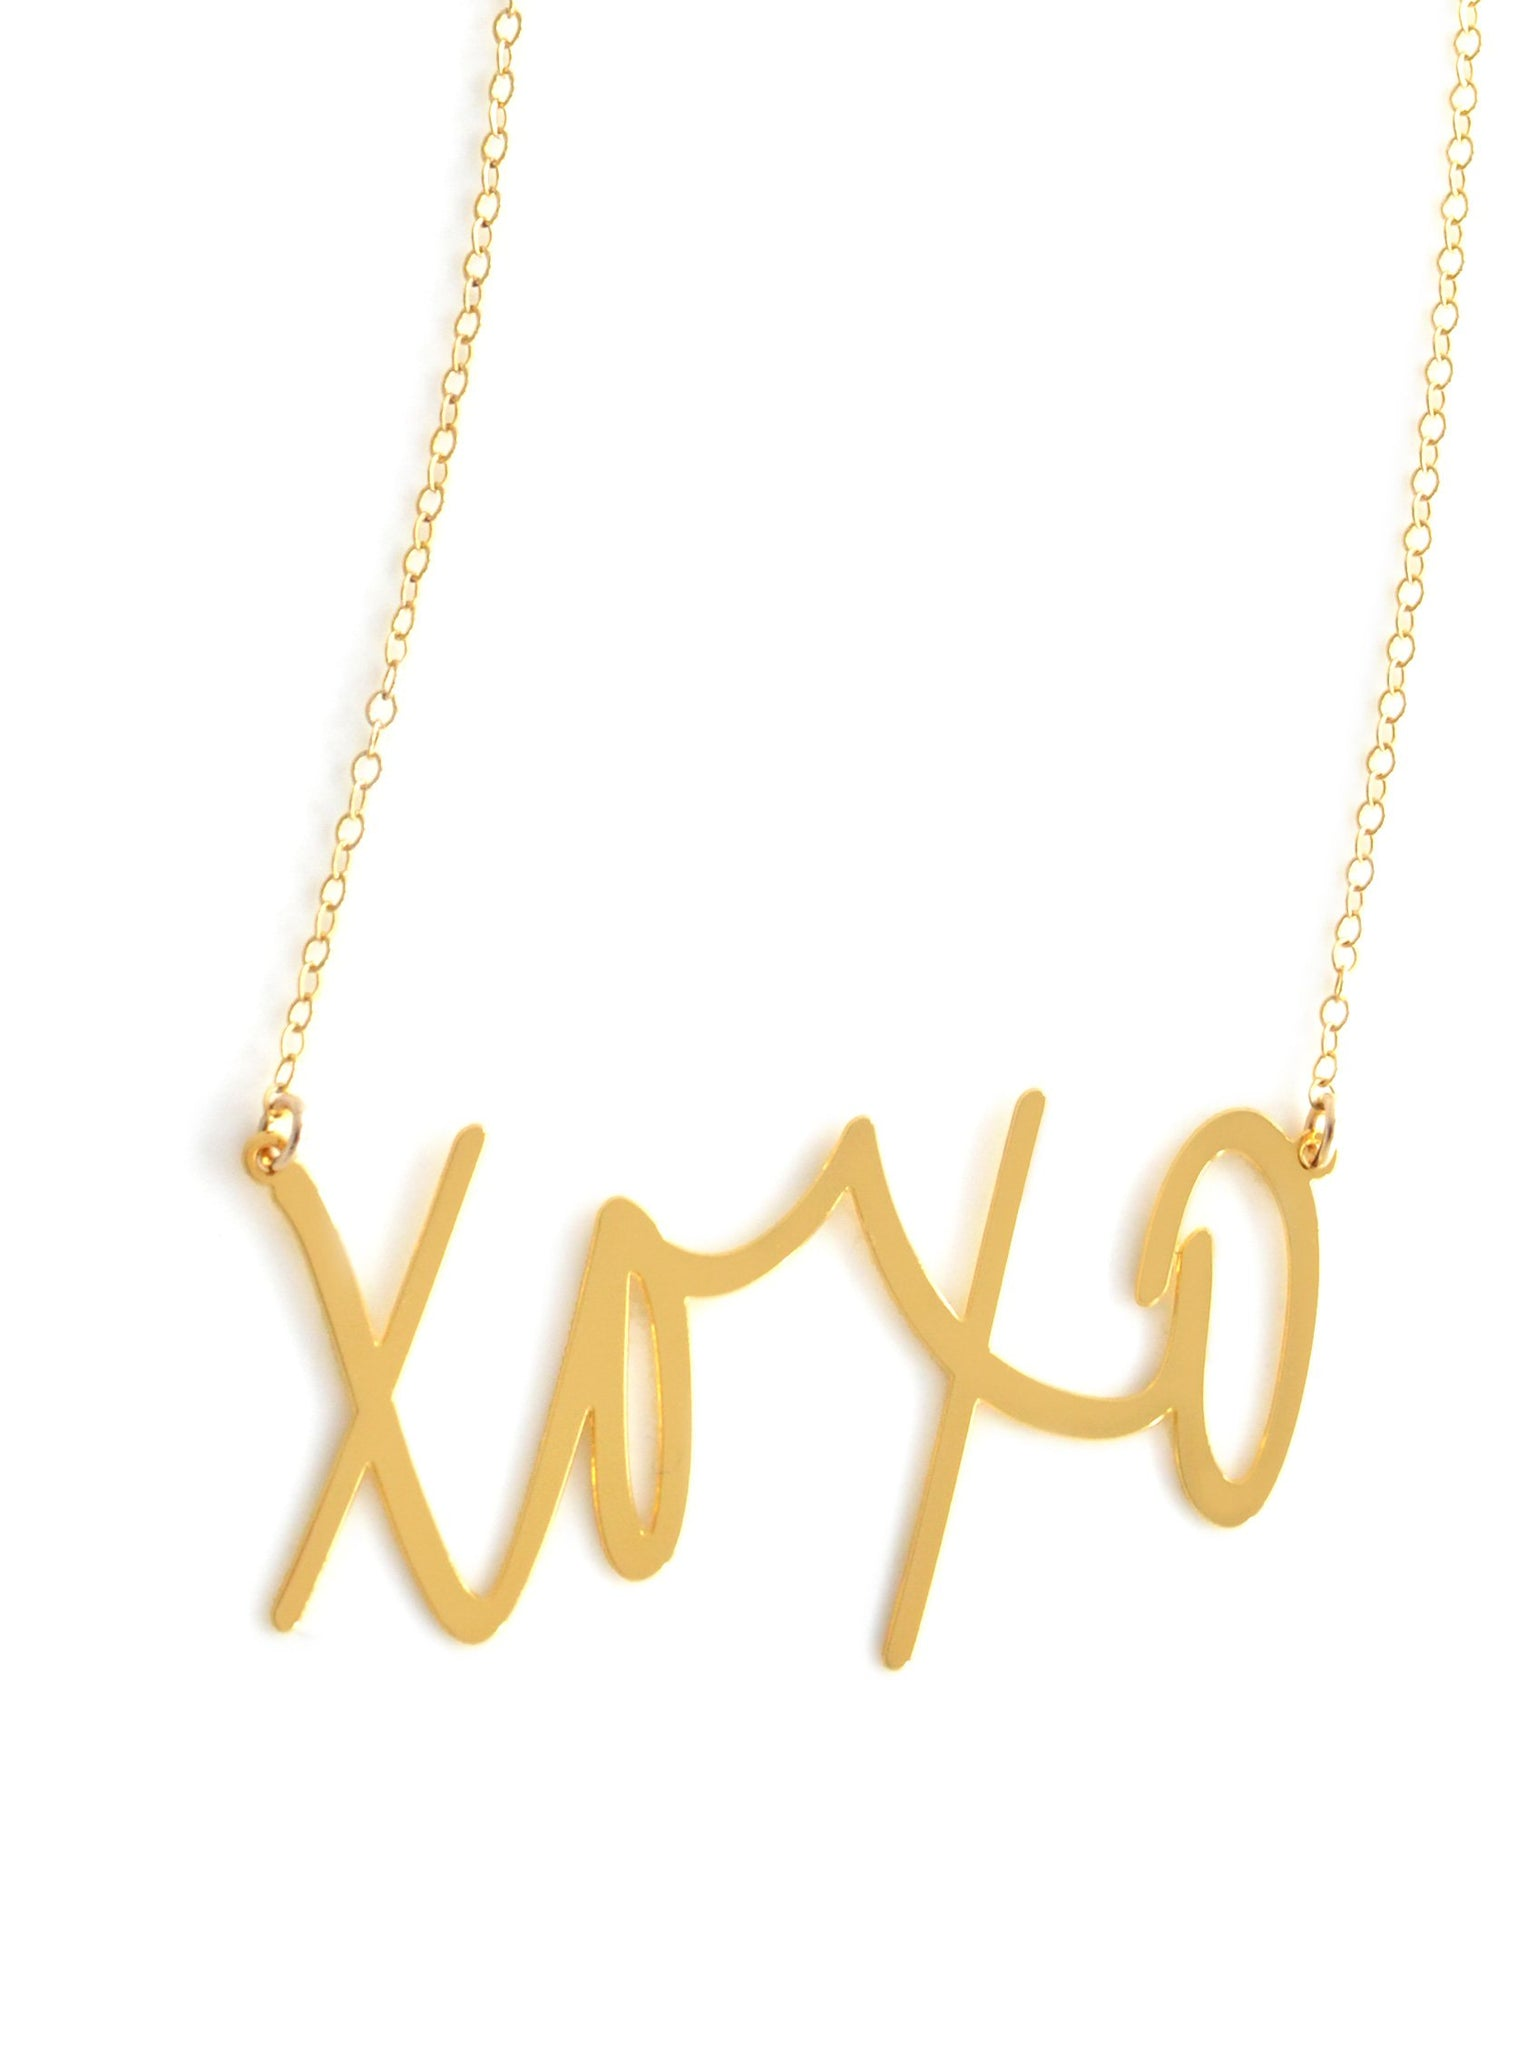 XOXO Necklace - Brevity Jewelry - Made in USA - Affordable Gold and Silver Jewelry